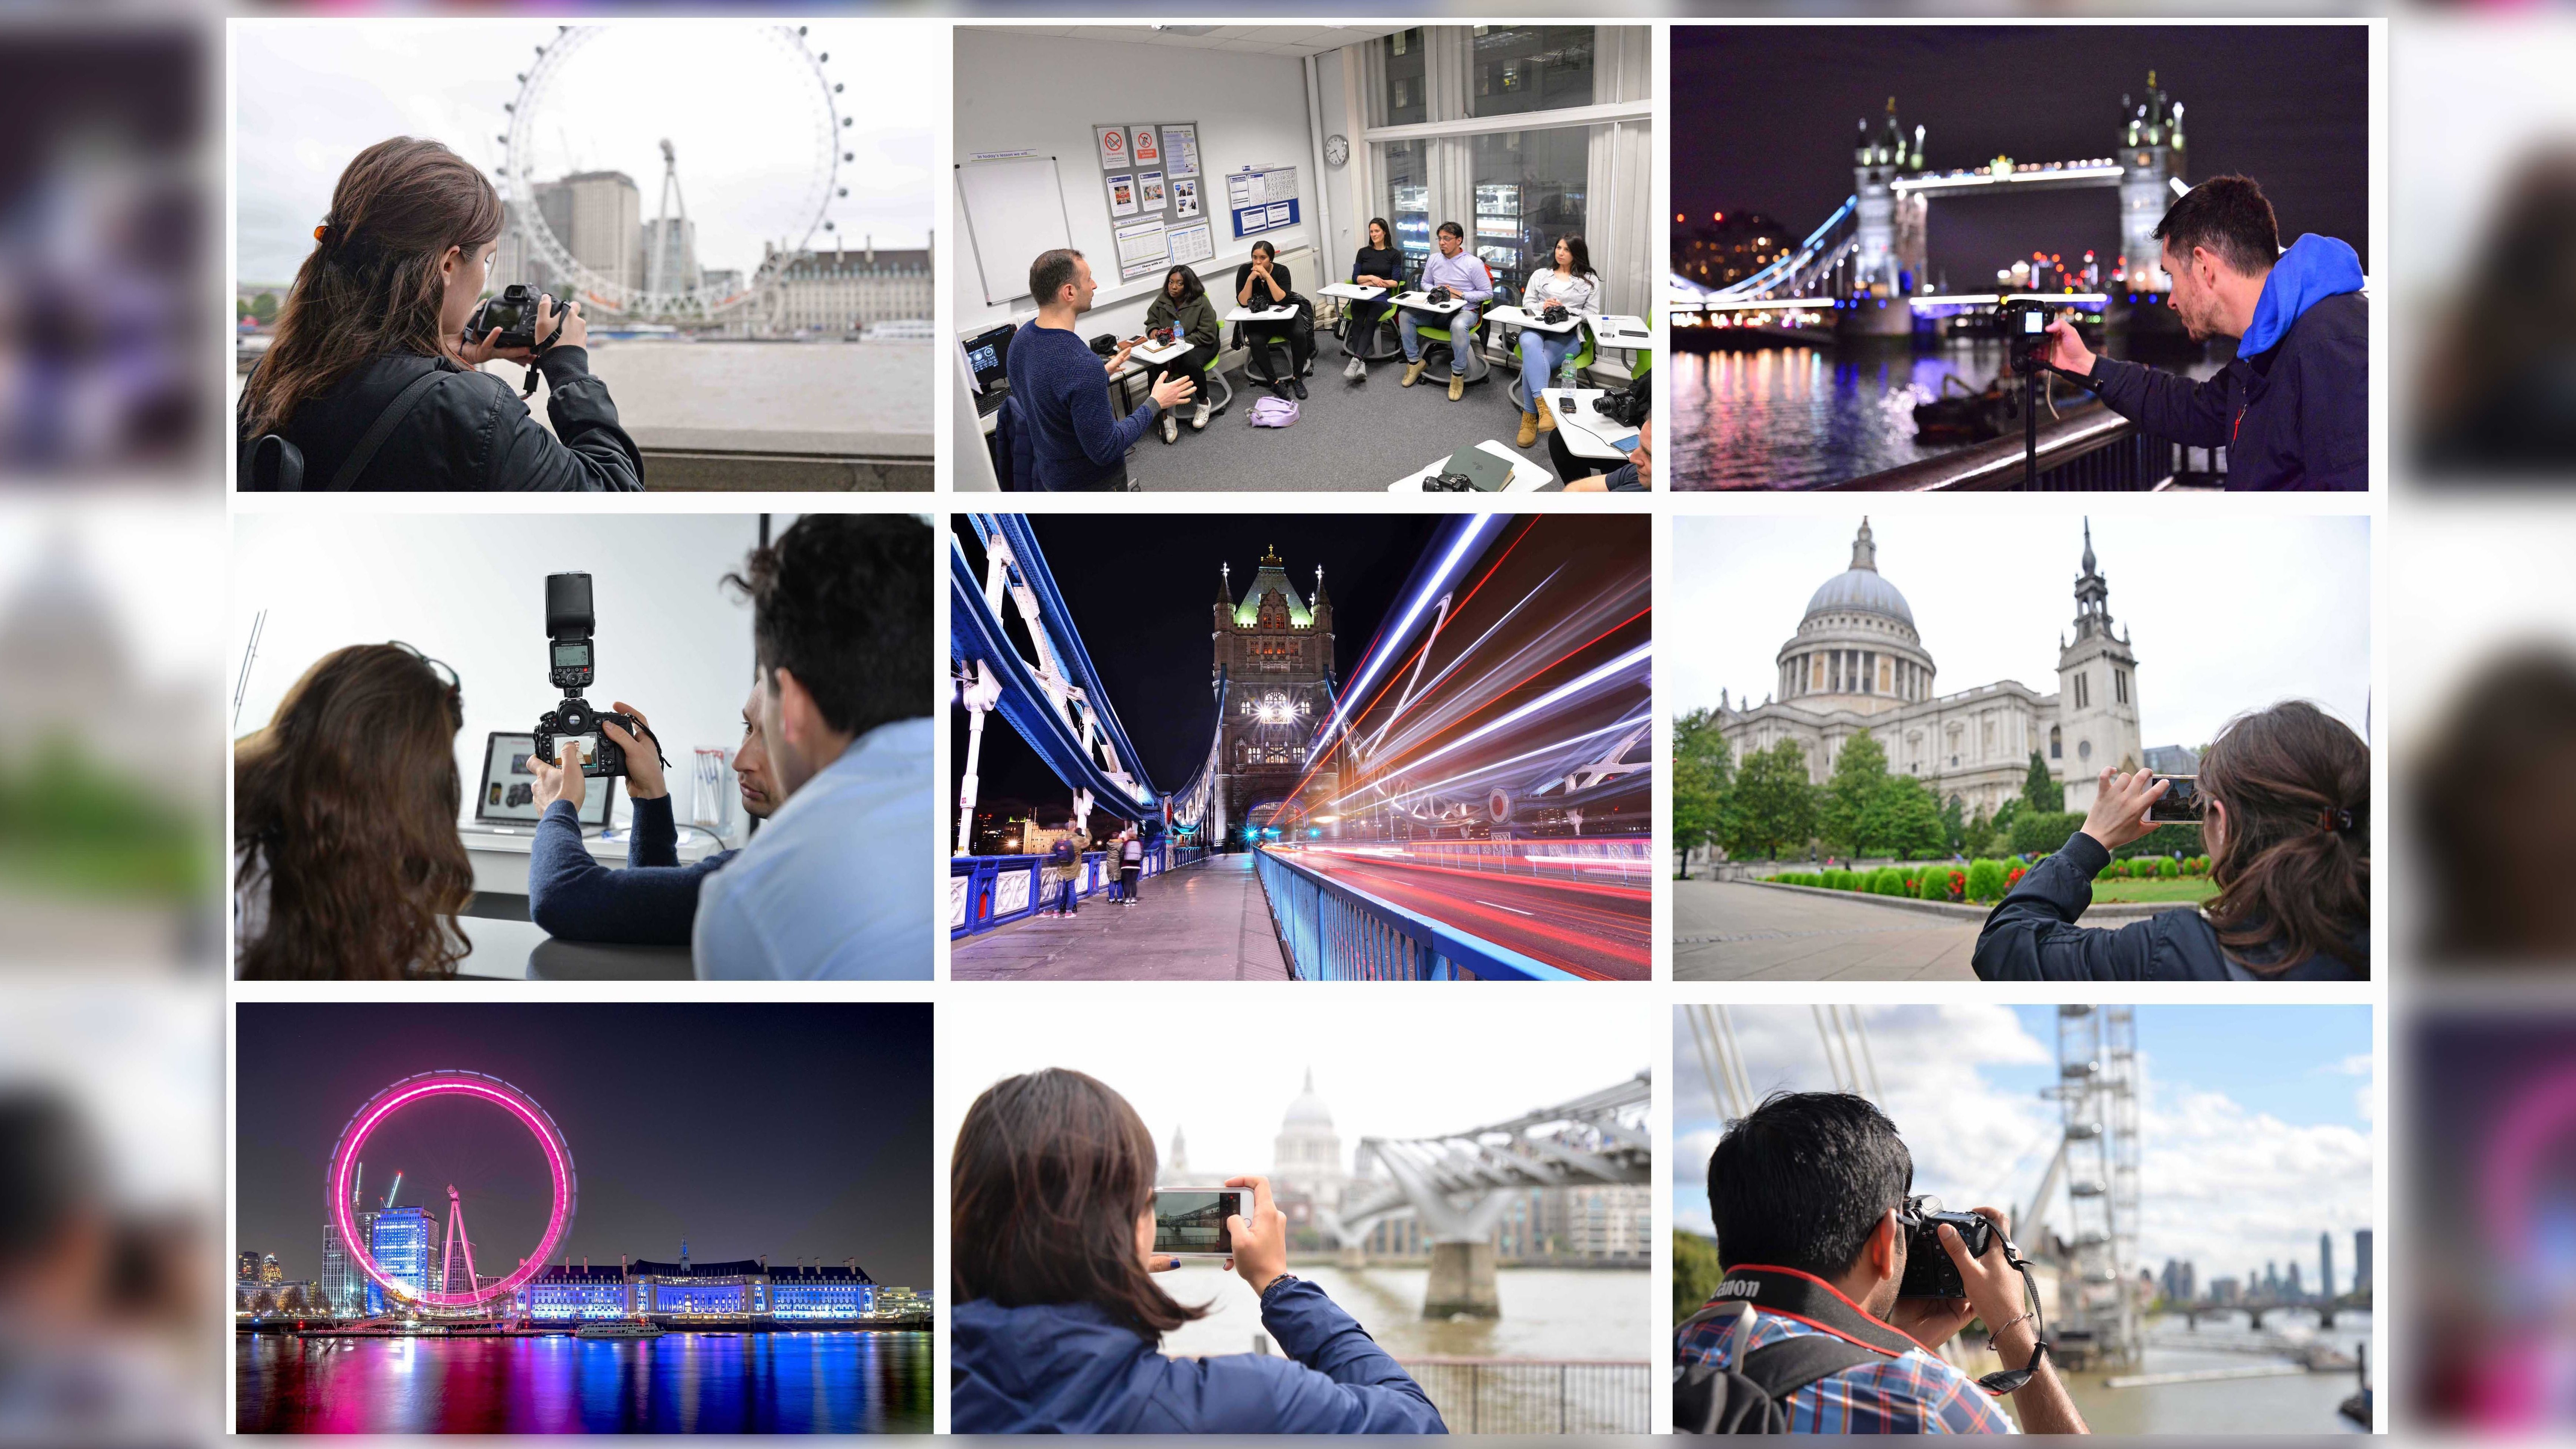 Become a Pro Photographer or Start an exciting New Hobby!